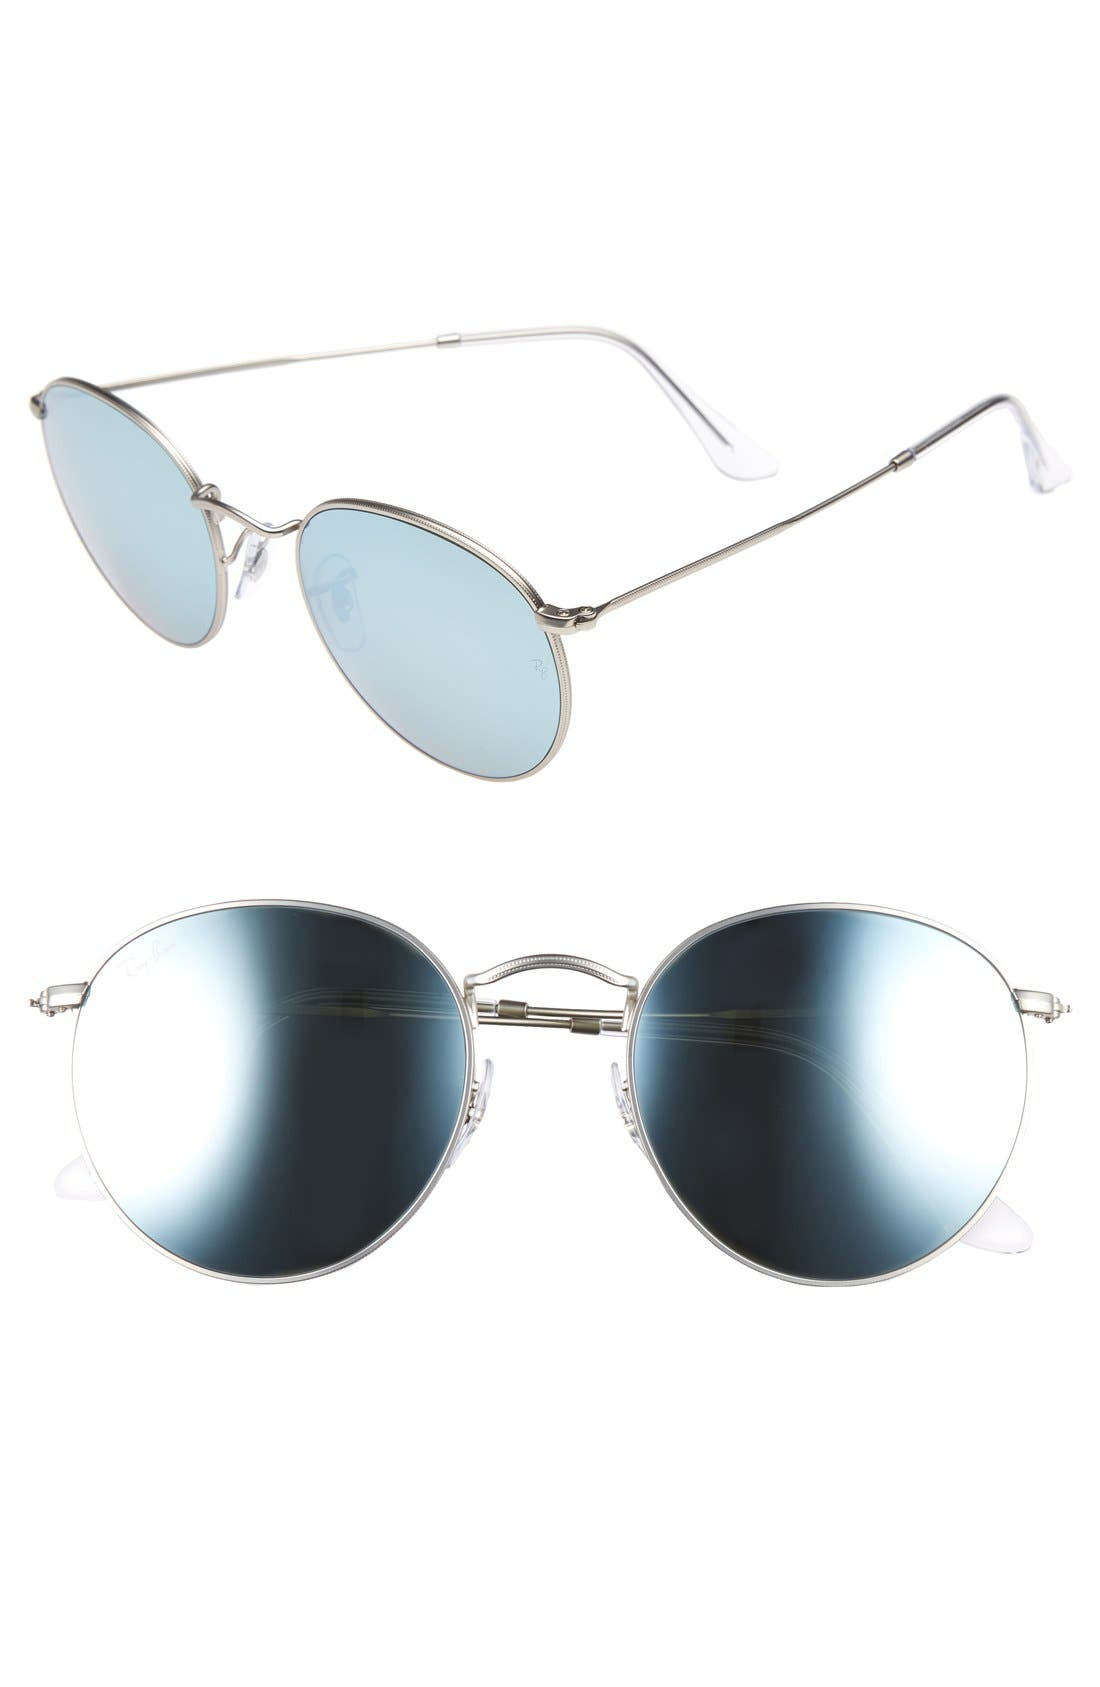 Icons 53mm Retro Sunglasses,                             Main thumbnail 1, color,                             Silver Mirror